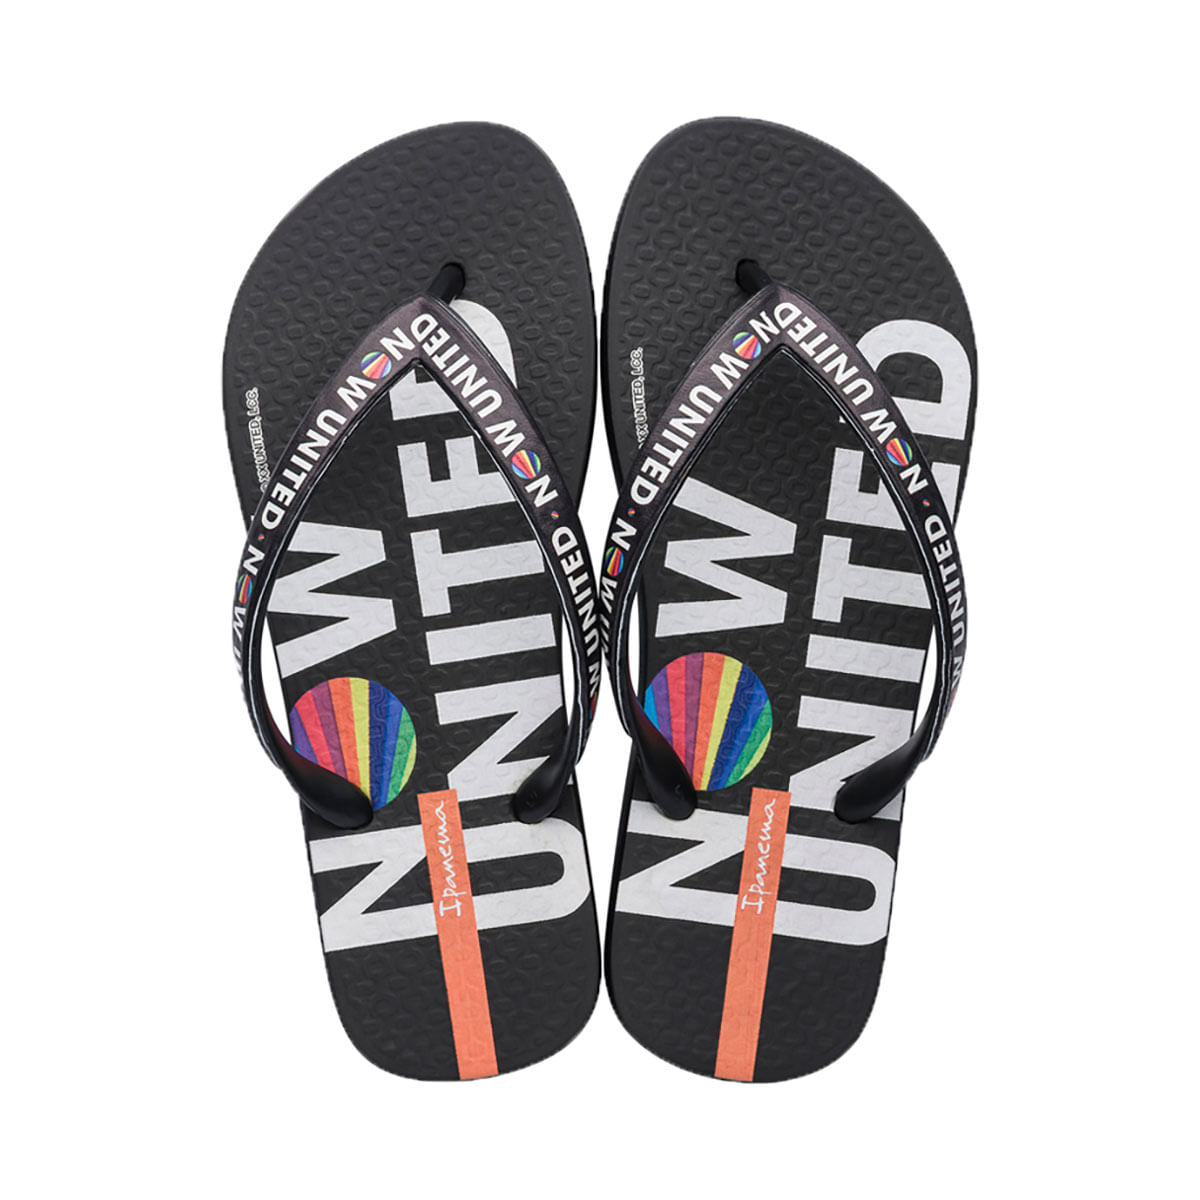 Chinelo-Flip-Flop-Now-United---27-ao-40--26633--VER21-